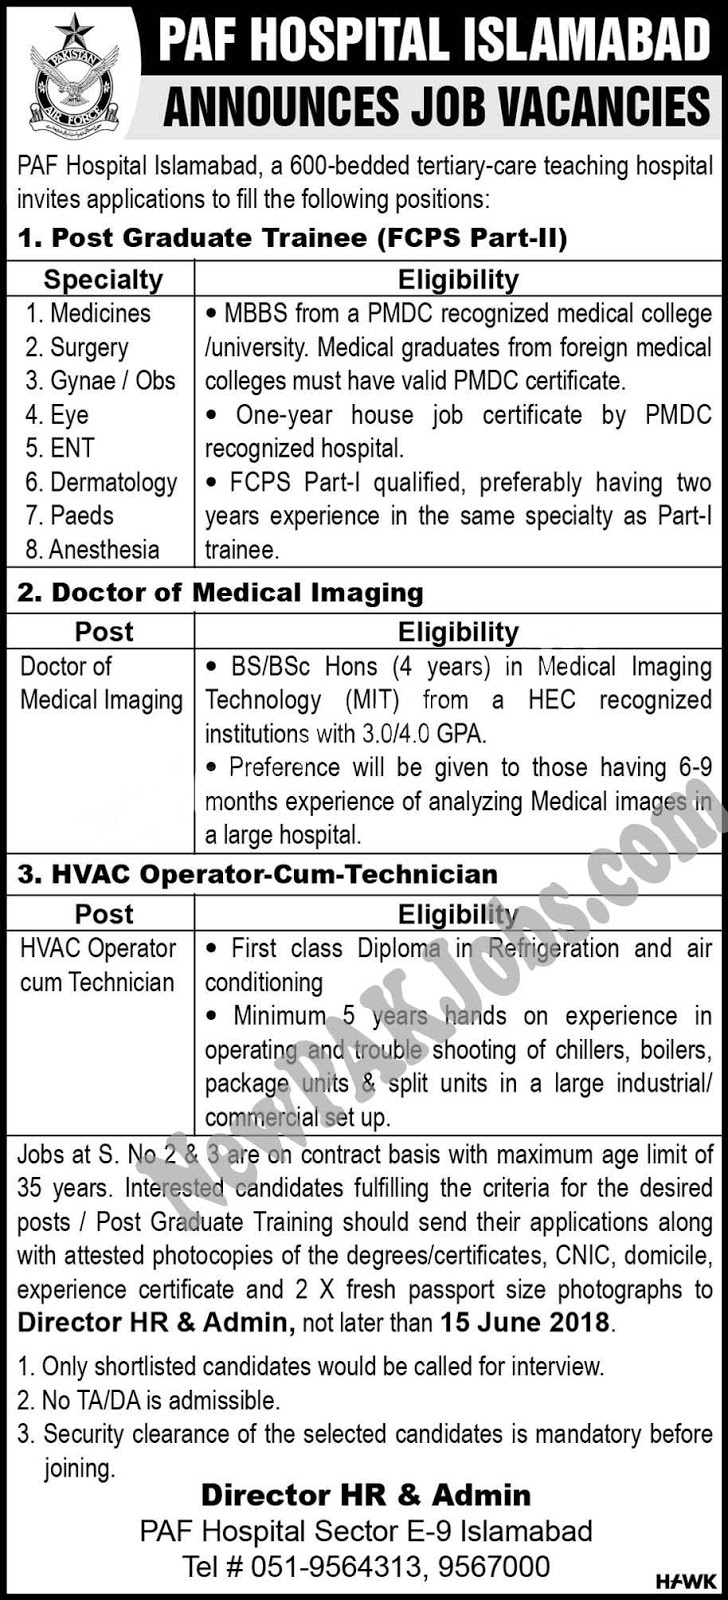 PAF Hospital Islamabad Medical Jobs announced for Different Posts May 2018